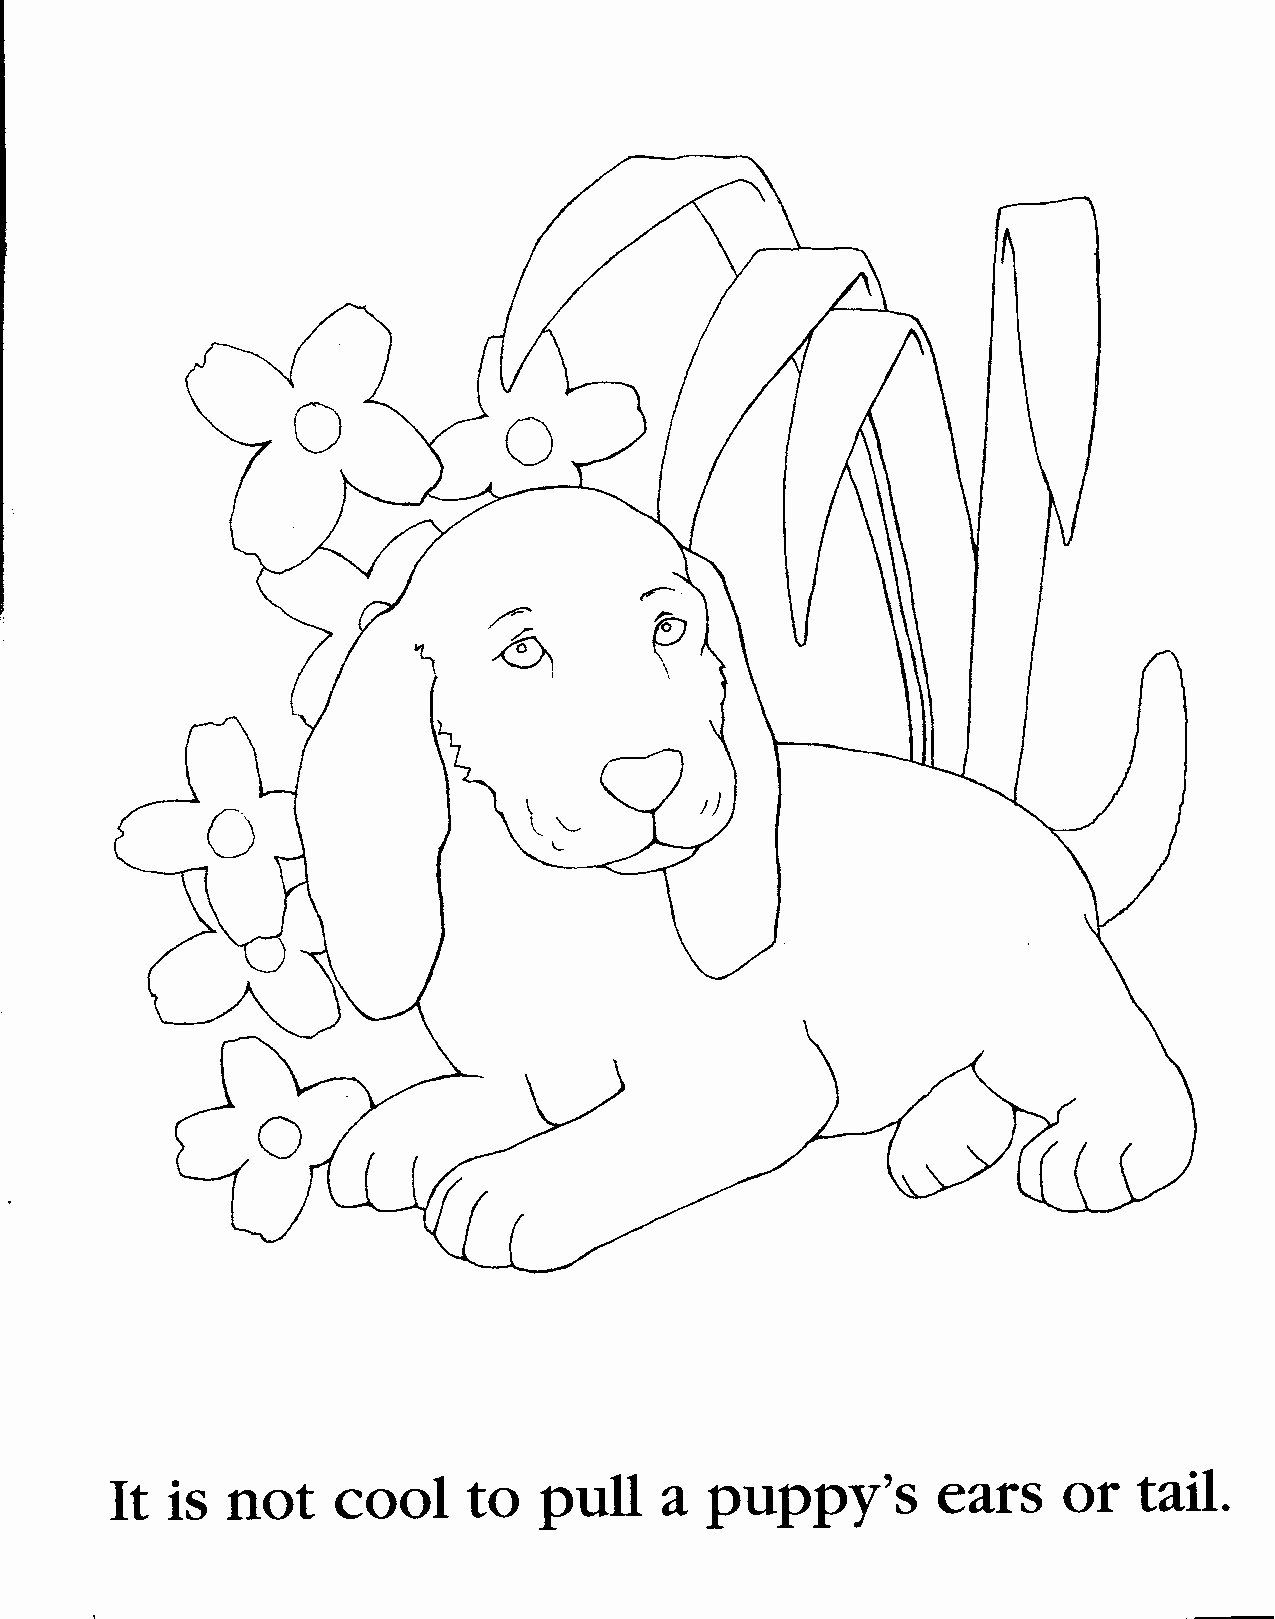 Water Buffalo Coloring Page Beautiful Air Pollution